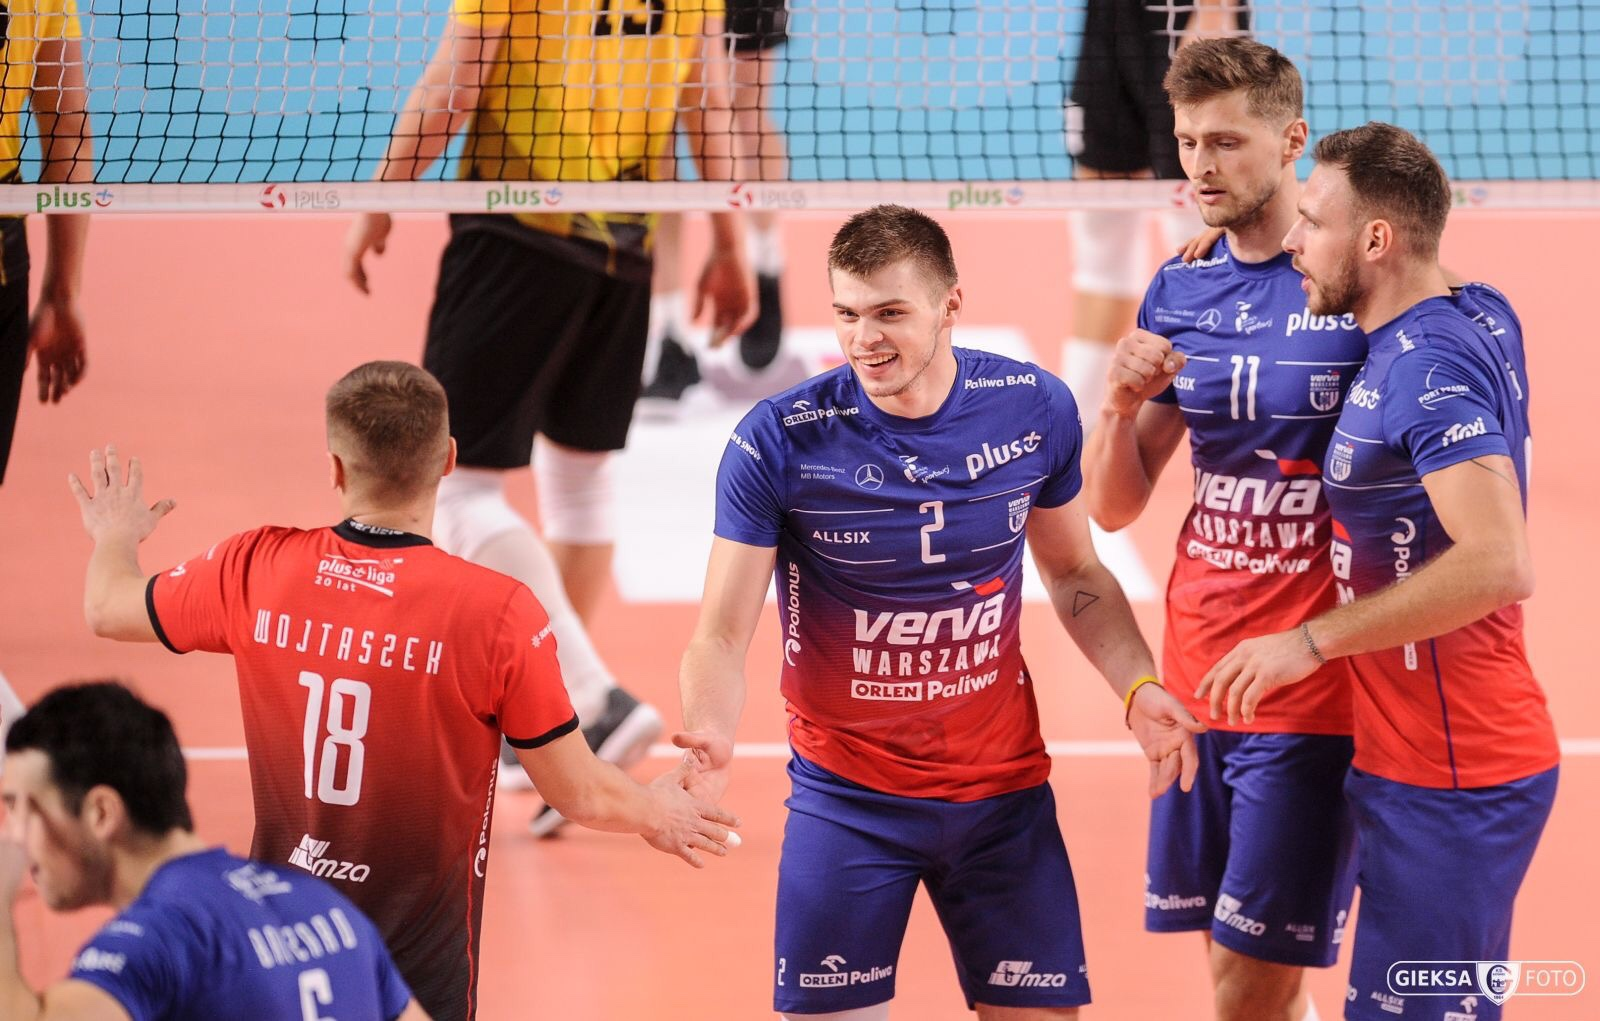 Poland: Warszawa drop one point against Katowice, ZAKSA break resistance of Trefl after intense battle